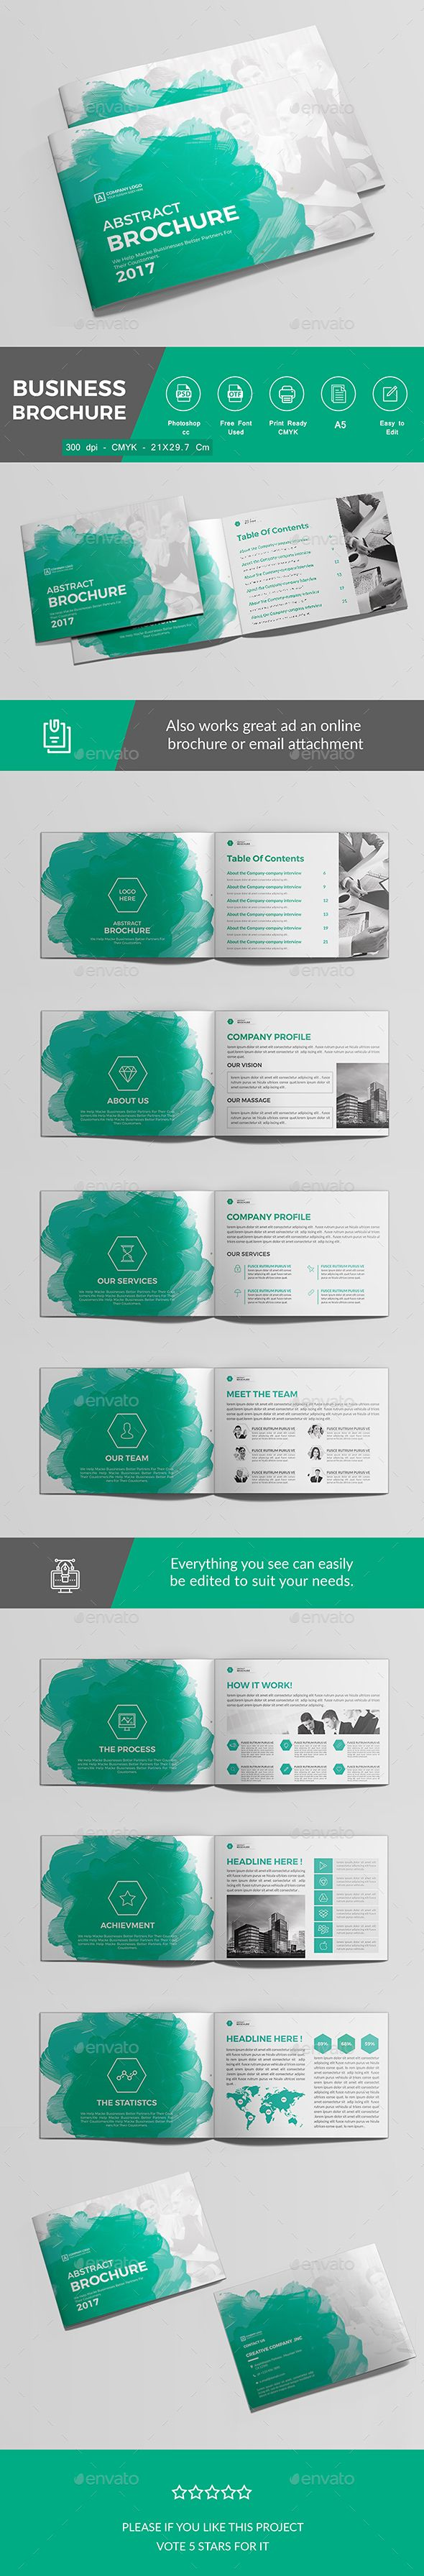 Business Brochure — Photoshop PSD #21x14.8 #identity • Download ➝ https://graphicriver.net/item/business-brochure/19036141?ref=pxcr